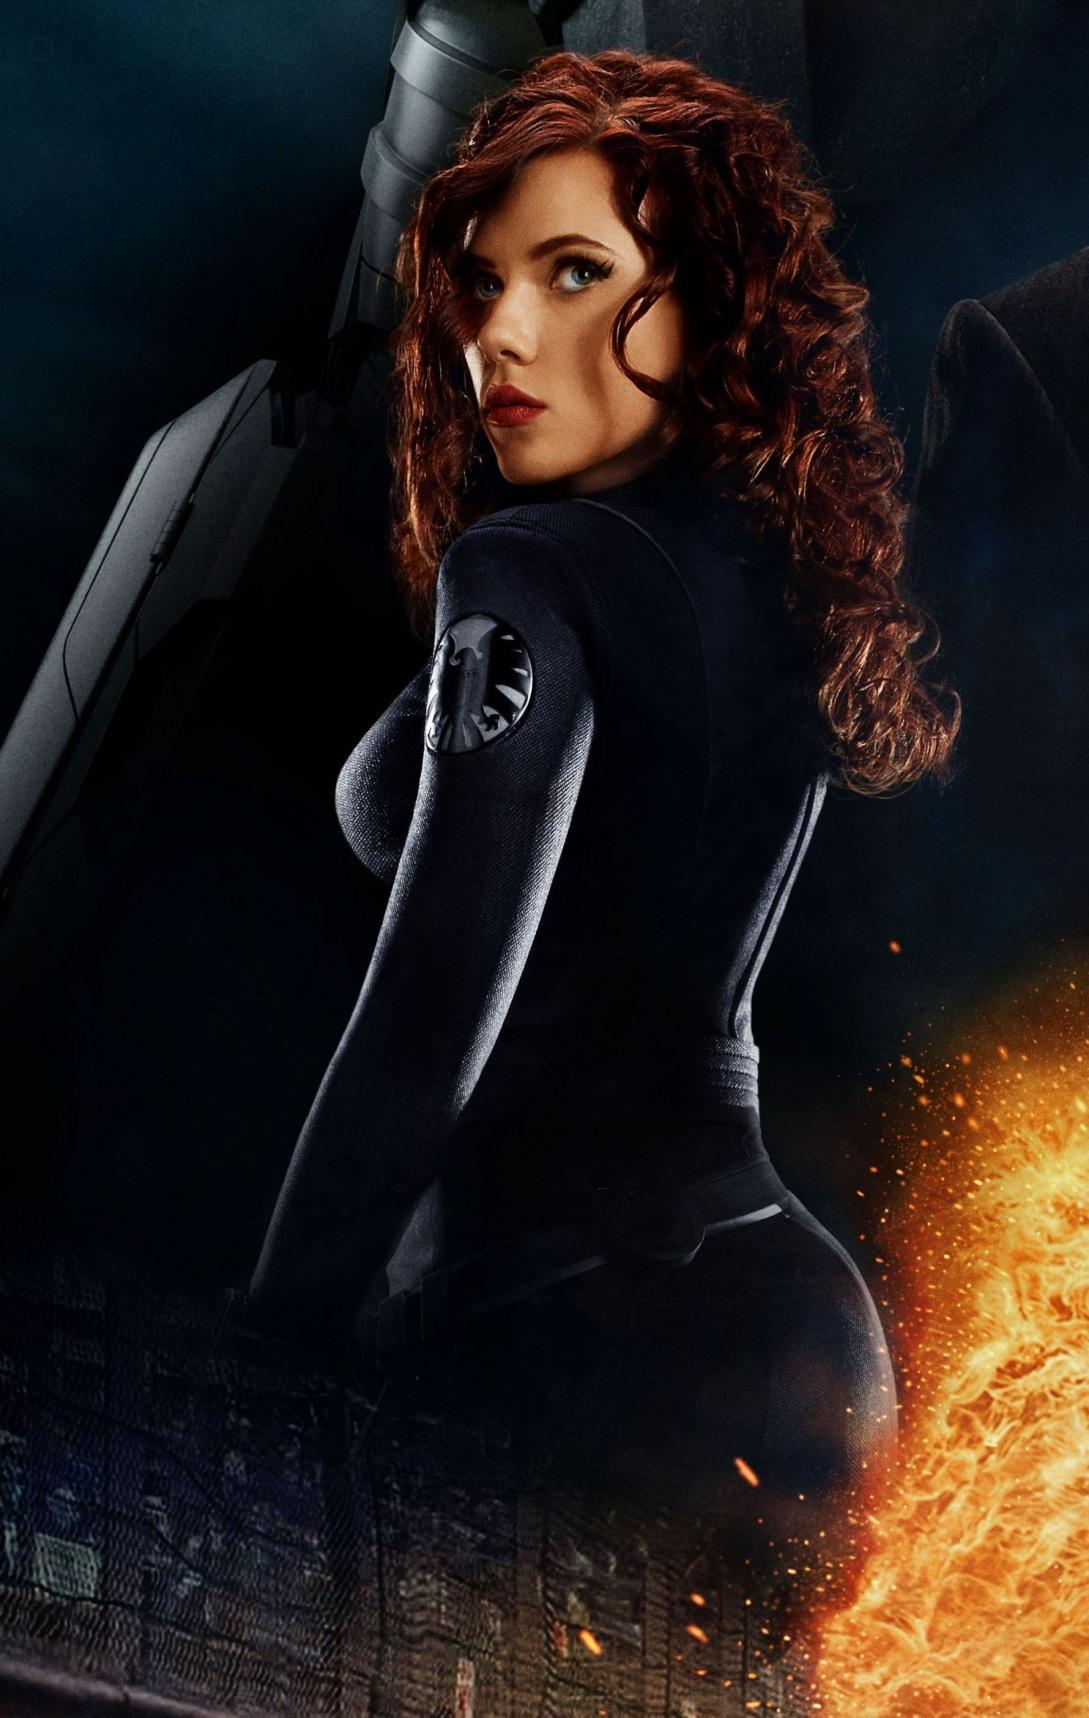 Scarlett Johansson Iron Man Promos Caps Black Widow Outfit Various Outfits Sj Poster Iron Man